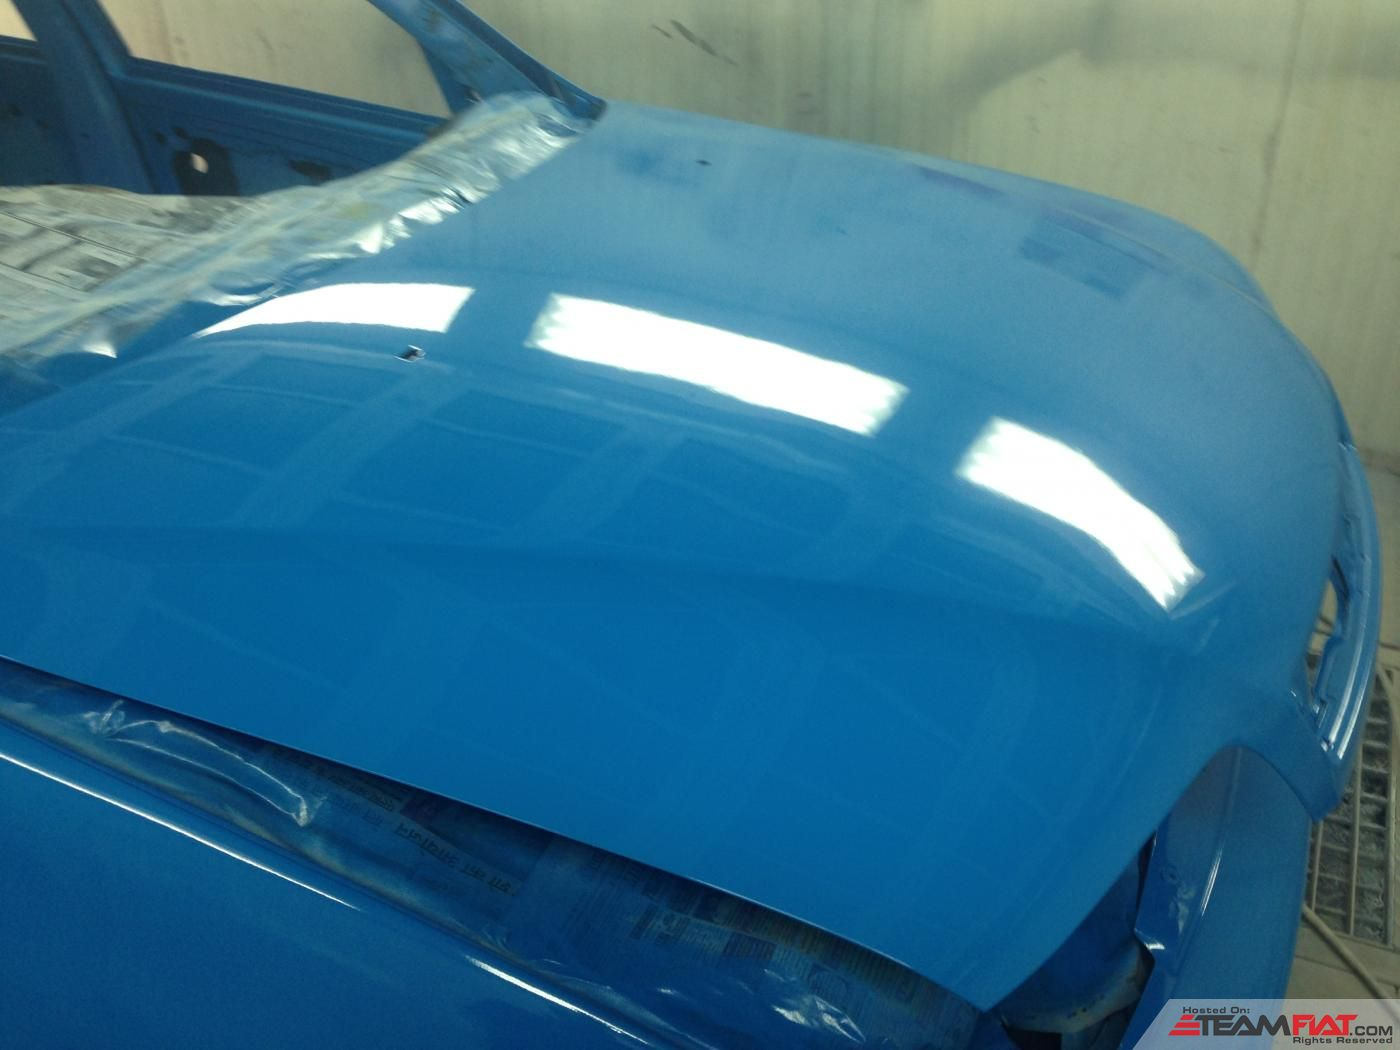 Bonnet Finish of Paint.jpg